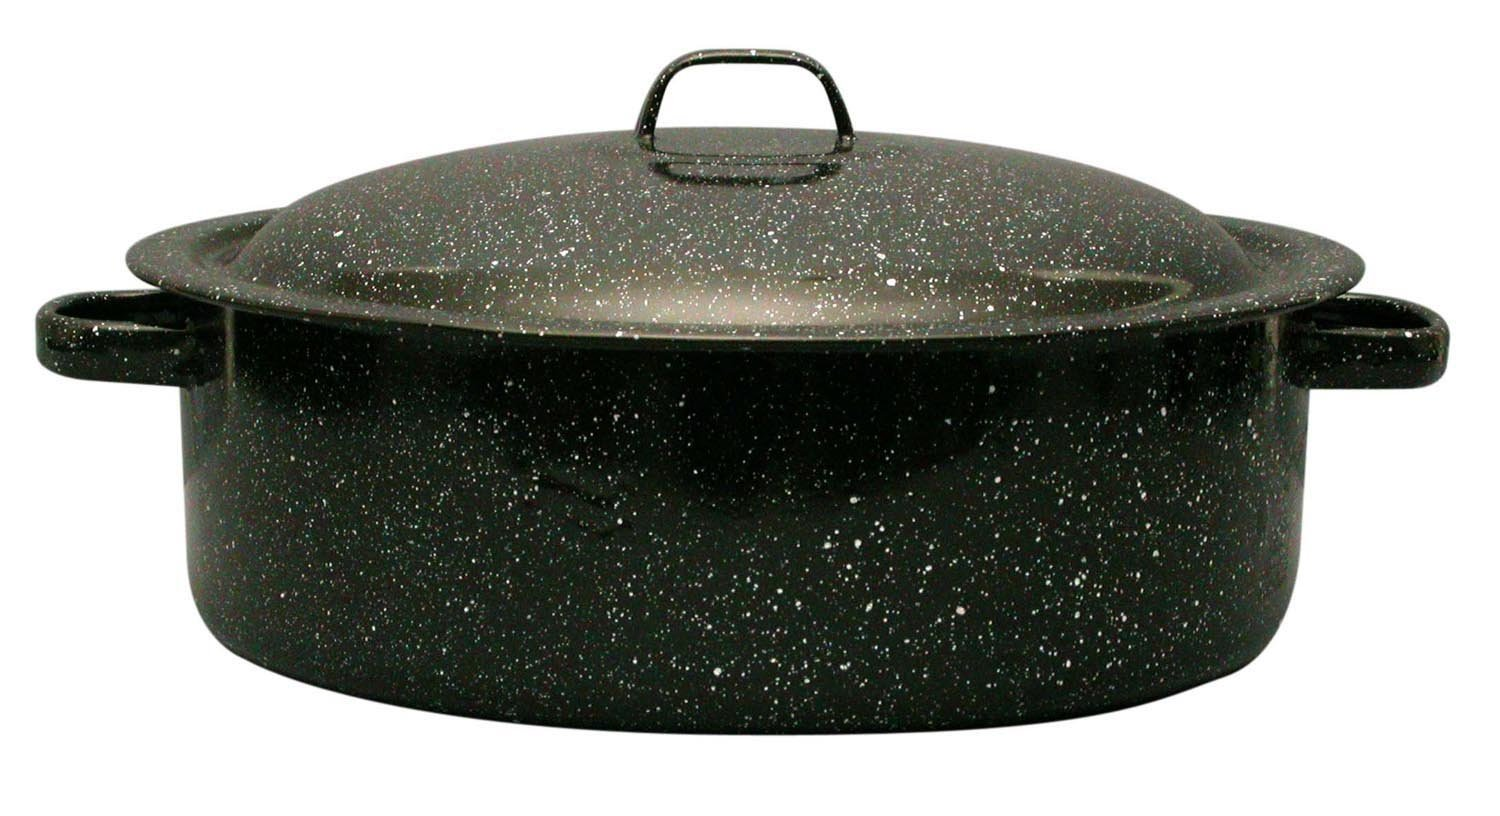 Granite Ware 0613-4 3-Quart Covered Casserole